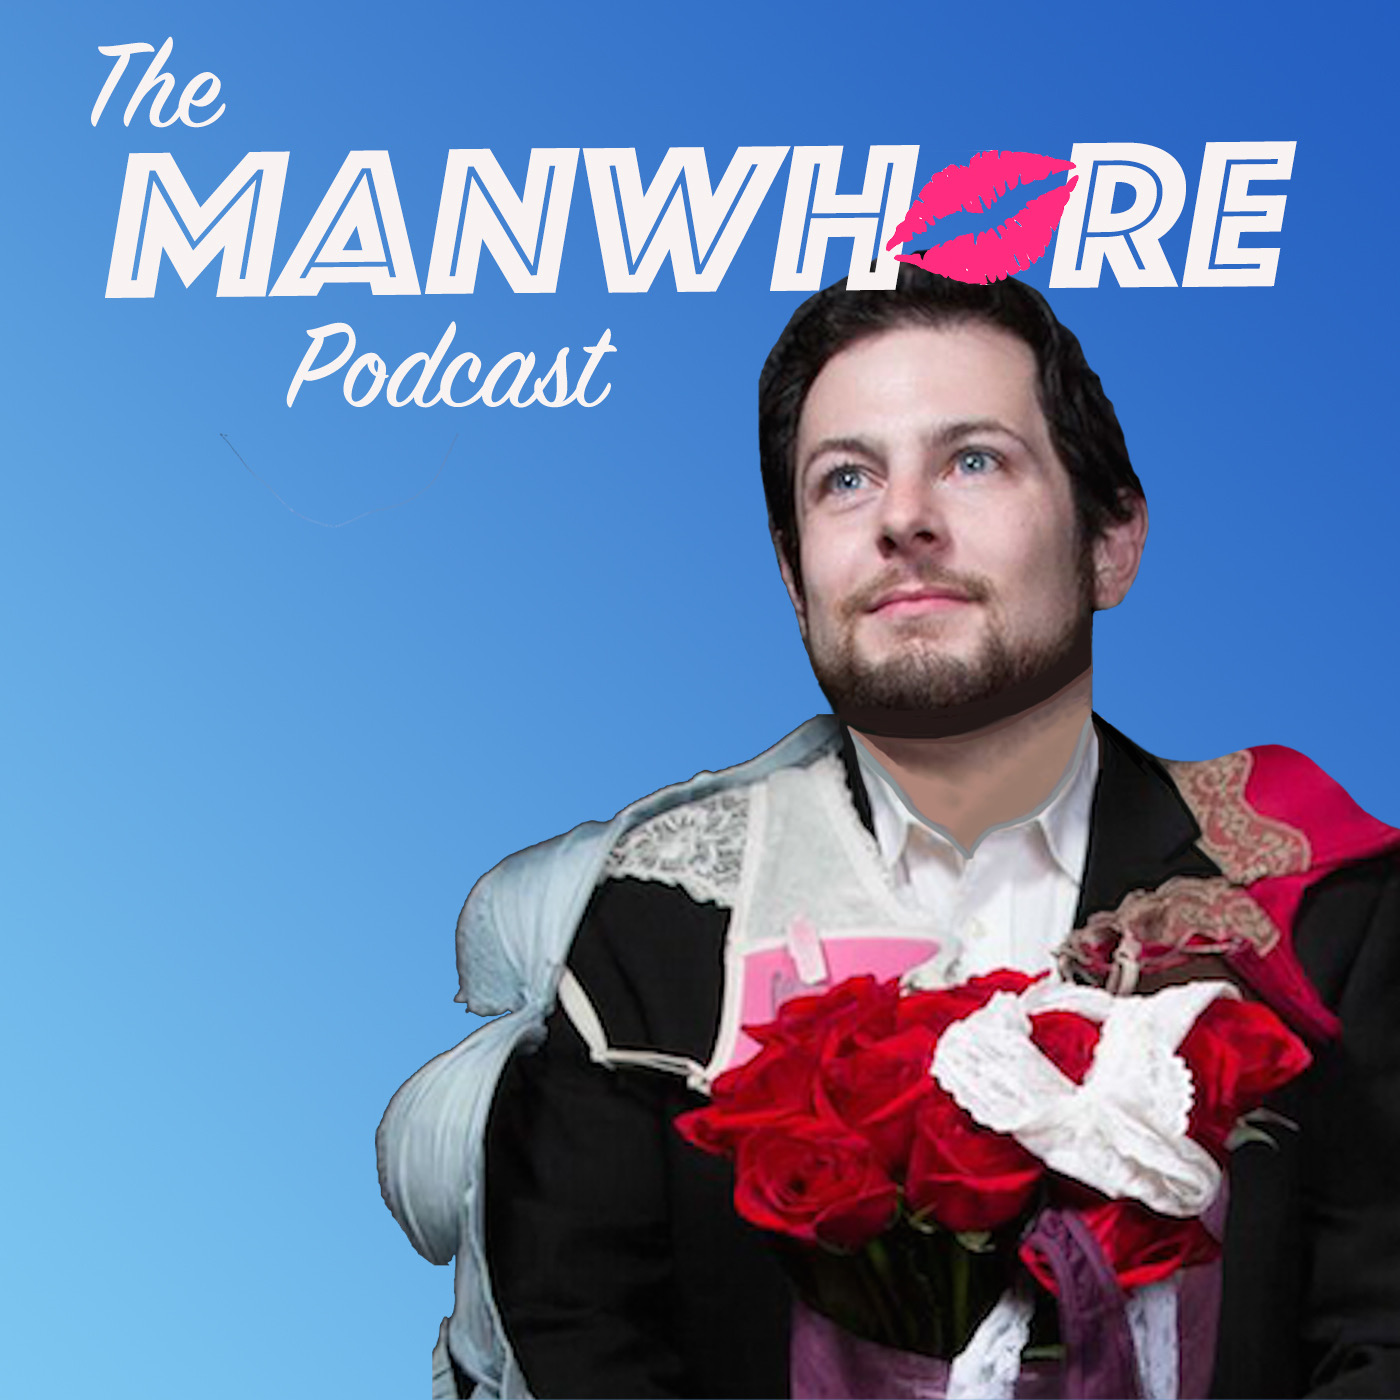 The Manwhore Podcast: A Sex-Positive Quest - Ep. 357: How To Have A Gang Bang